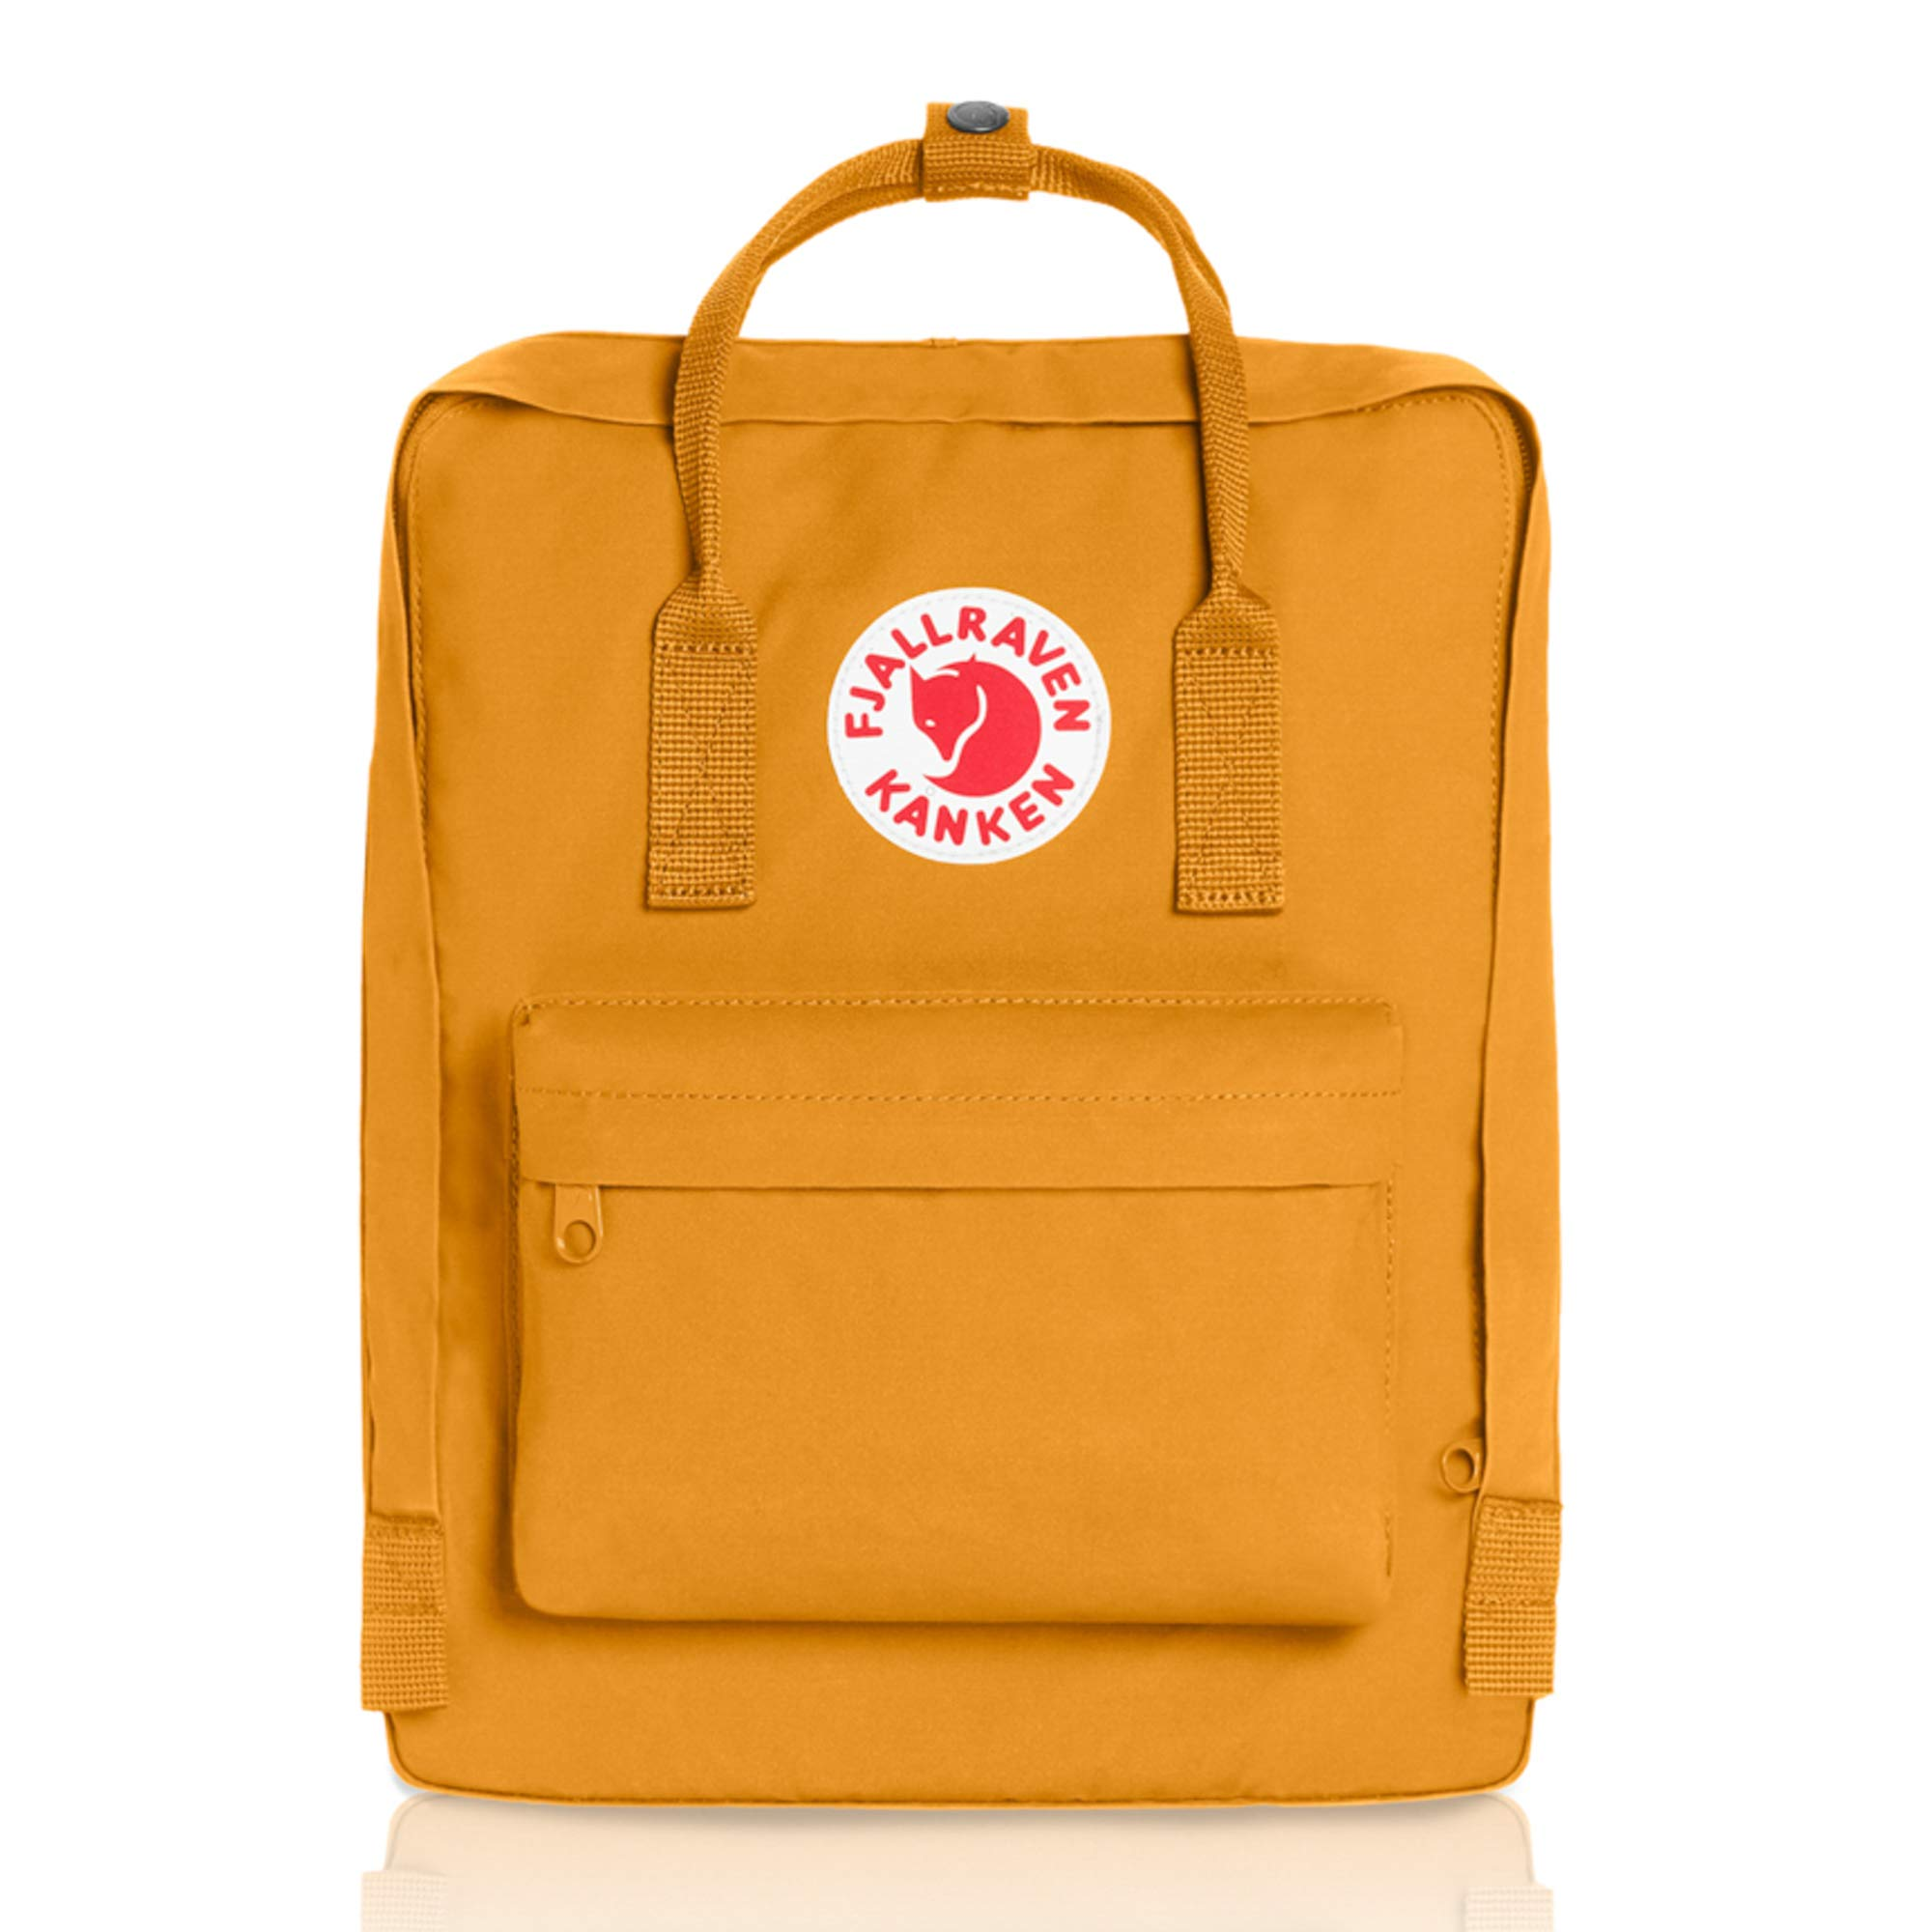 Fjallraven - Kanken Classic Pack, Heritage and Responsibility Since 1960, One Size,Ochre